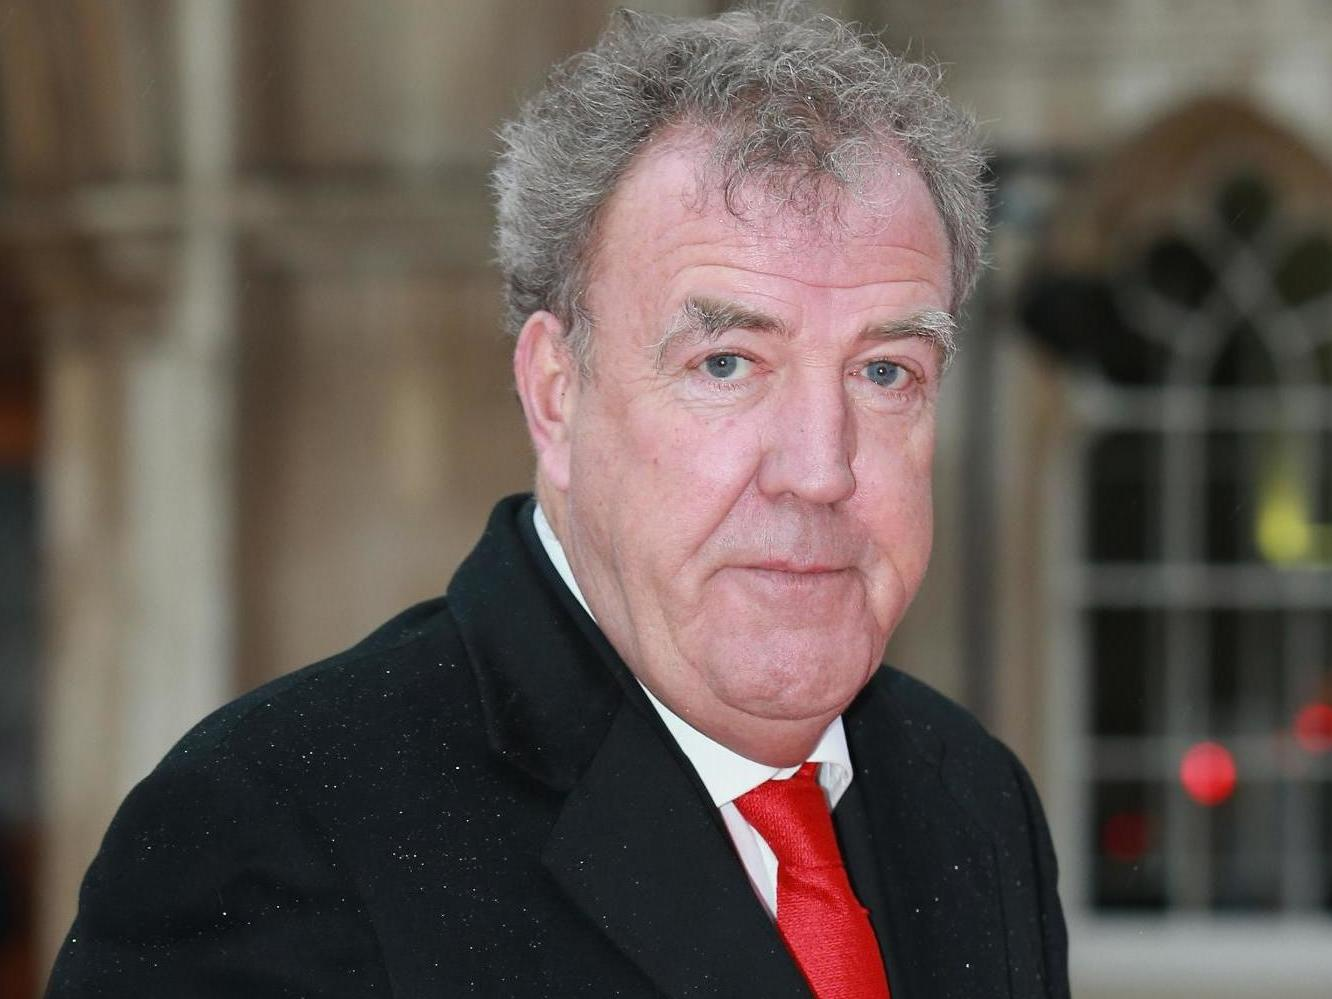 I'm a Celebrity: Jeremy Clarkson says 'count me in' for future series